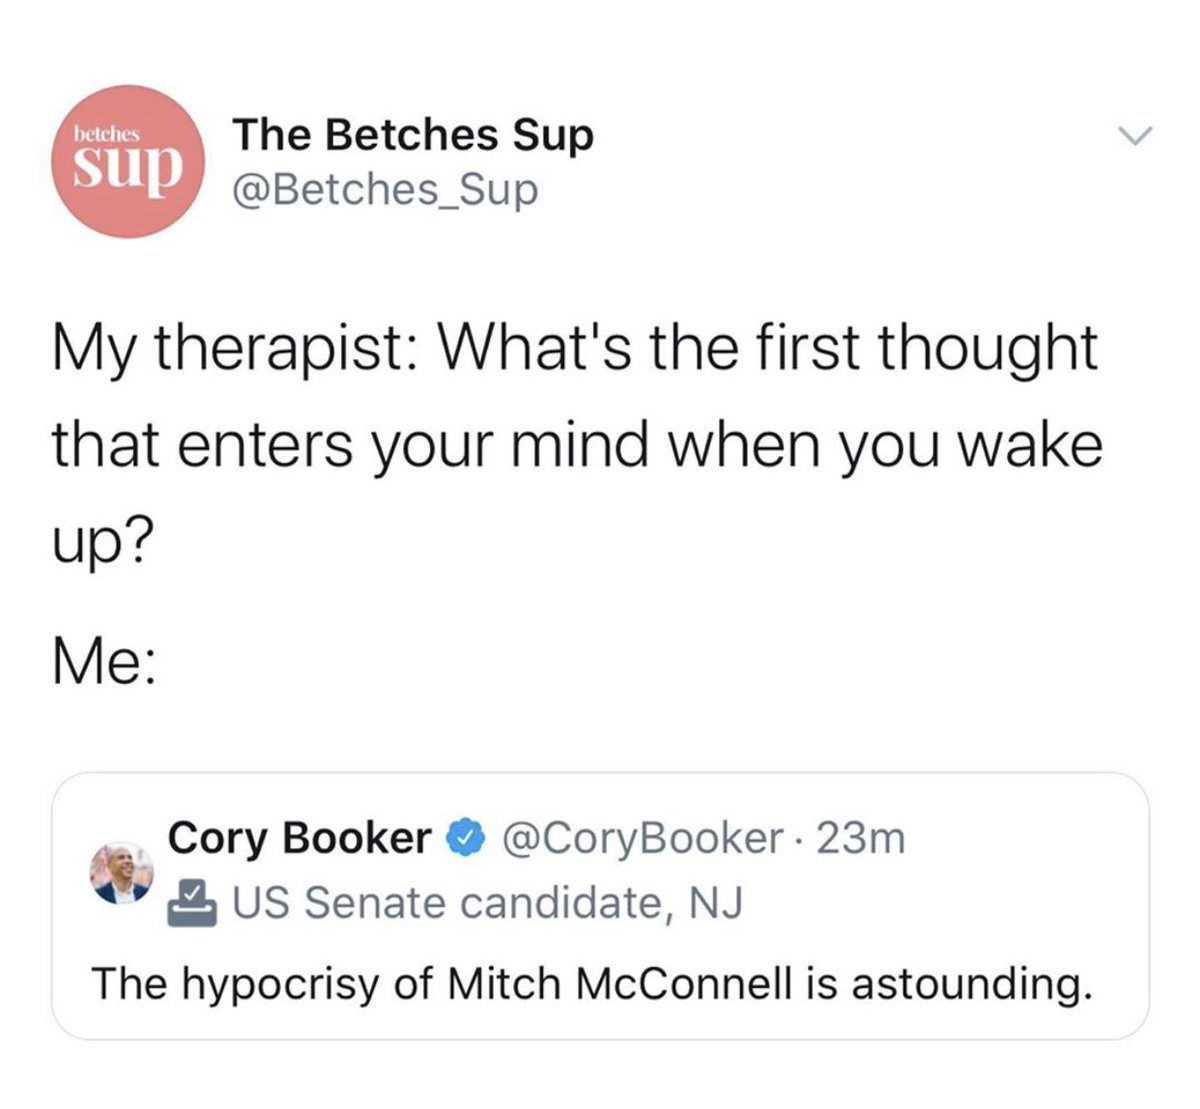 I have been thinking about it literally every day. @Betches_Sup @CoryBooker